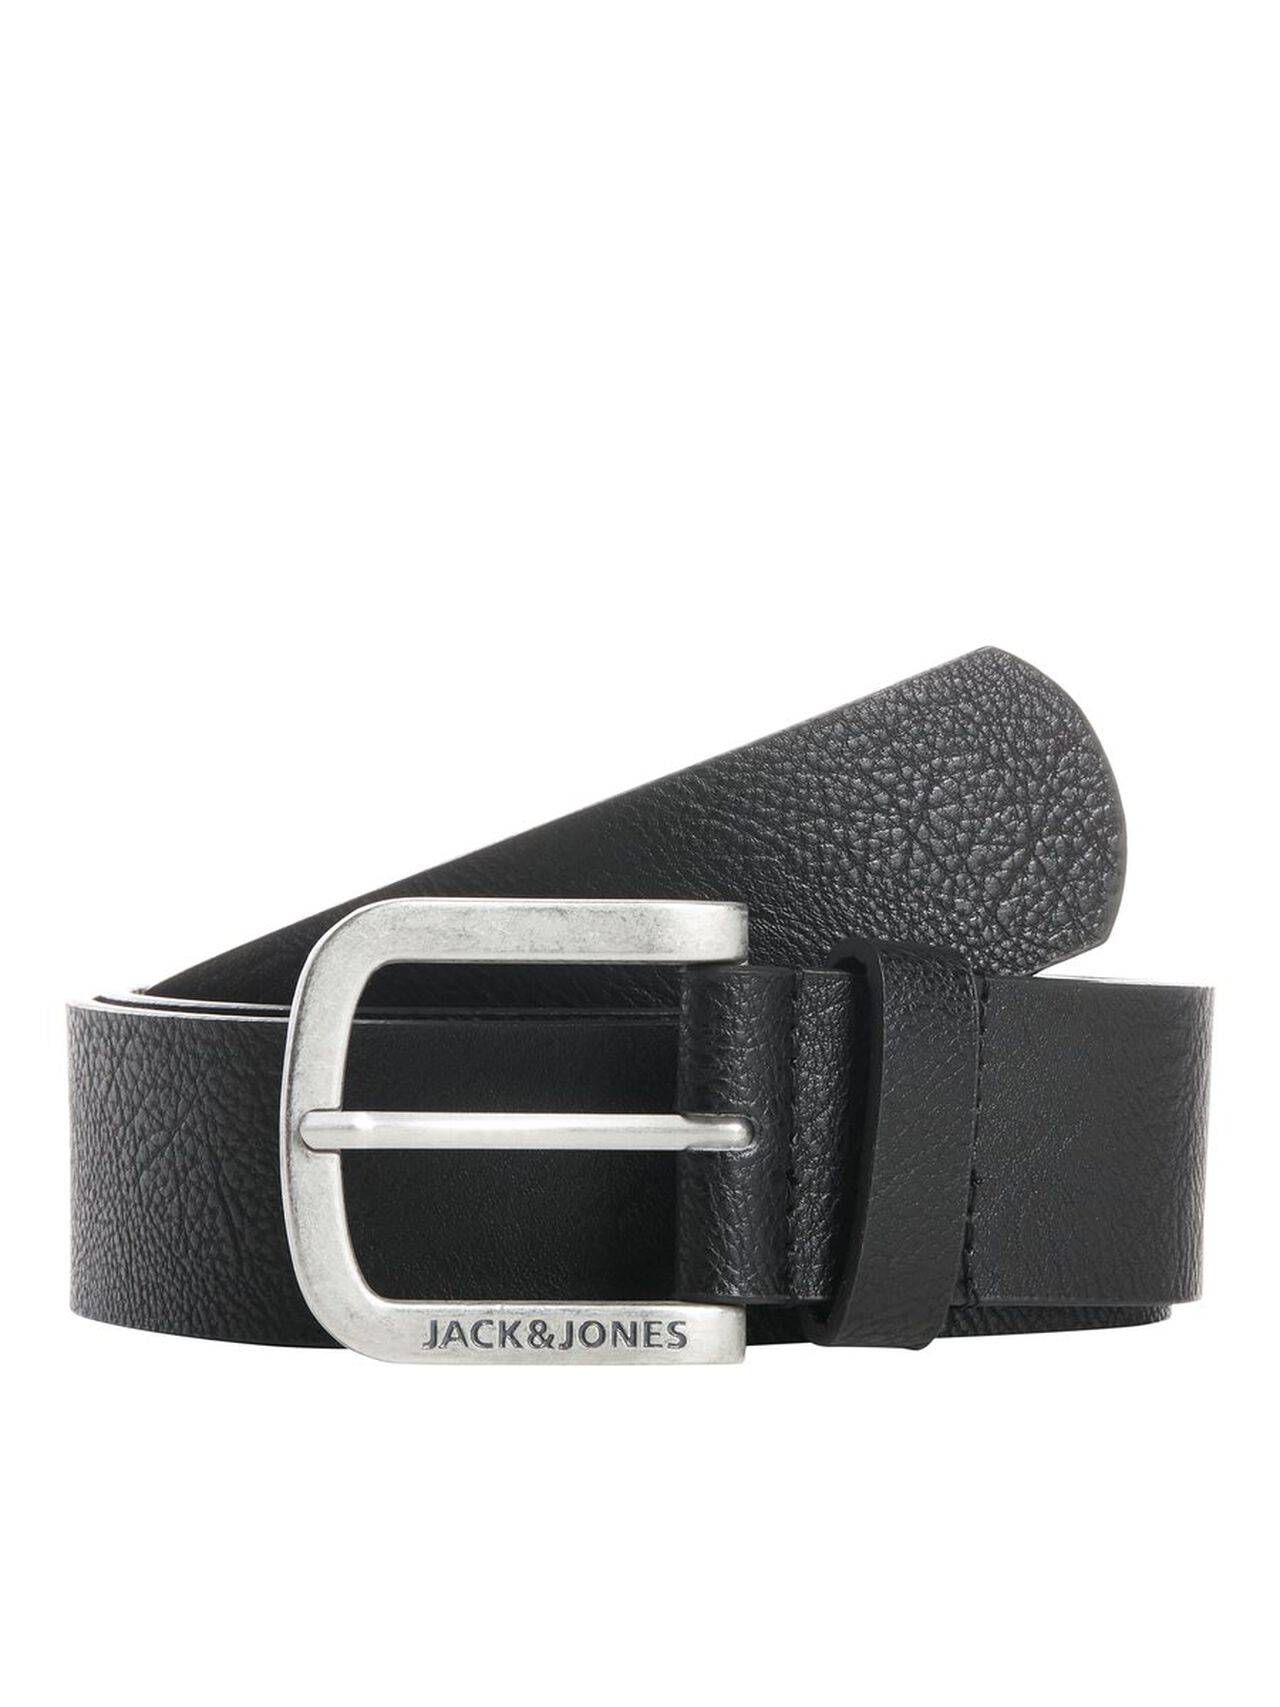 JACK & JONES Faux Leather Belt Men Black Black